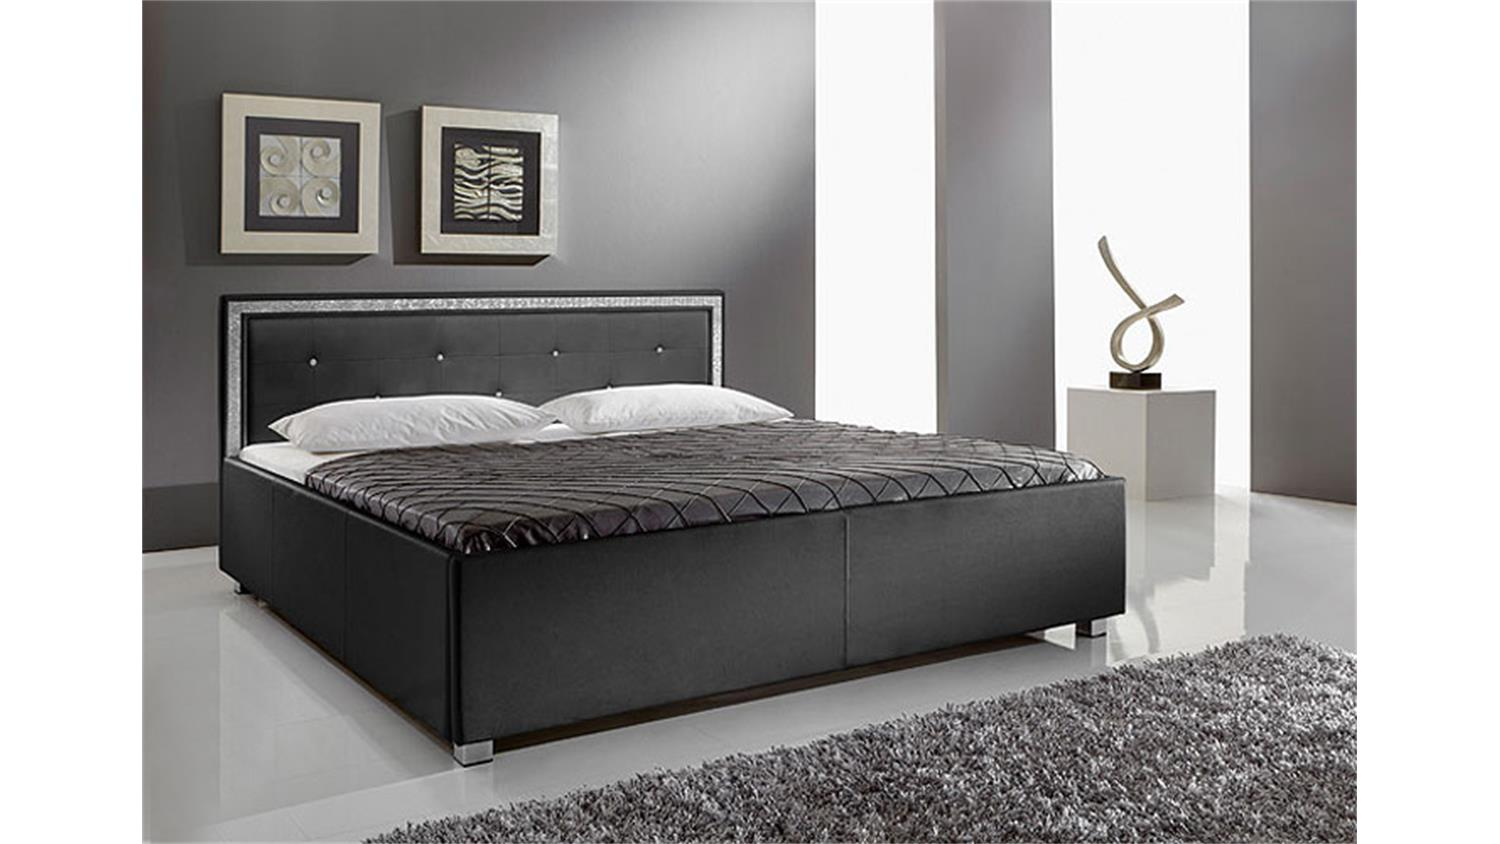 polsterbett bett myles i wei kunstleder kopfteil mit. Black Bedroom Furniture Sets. Home Design Ideas